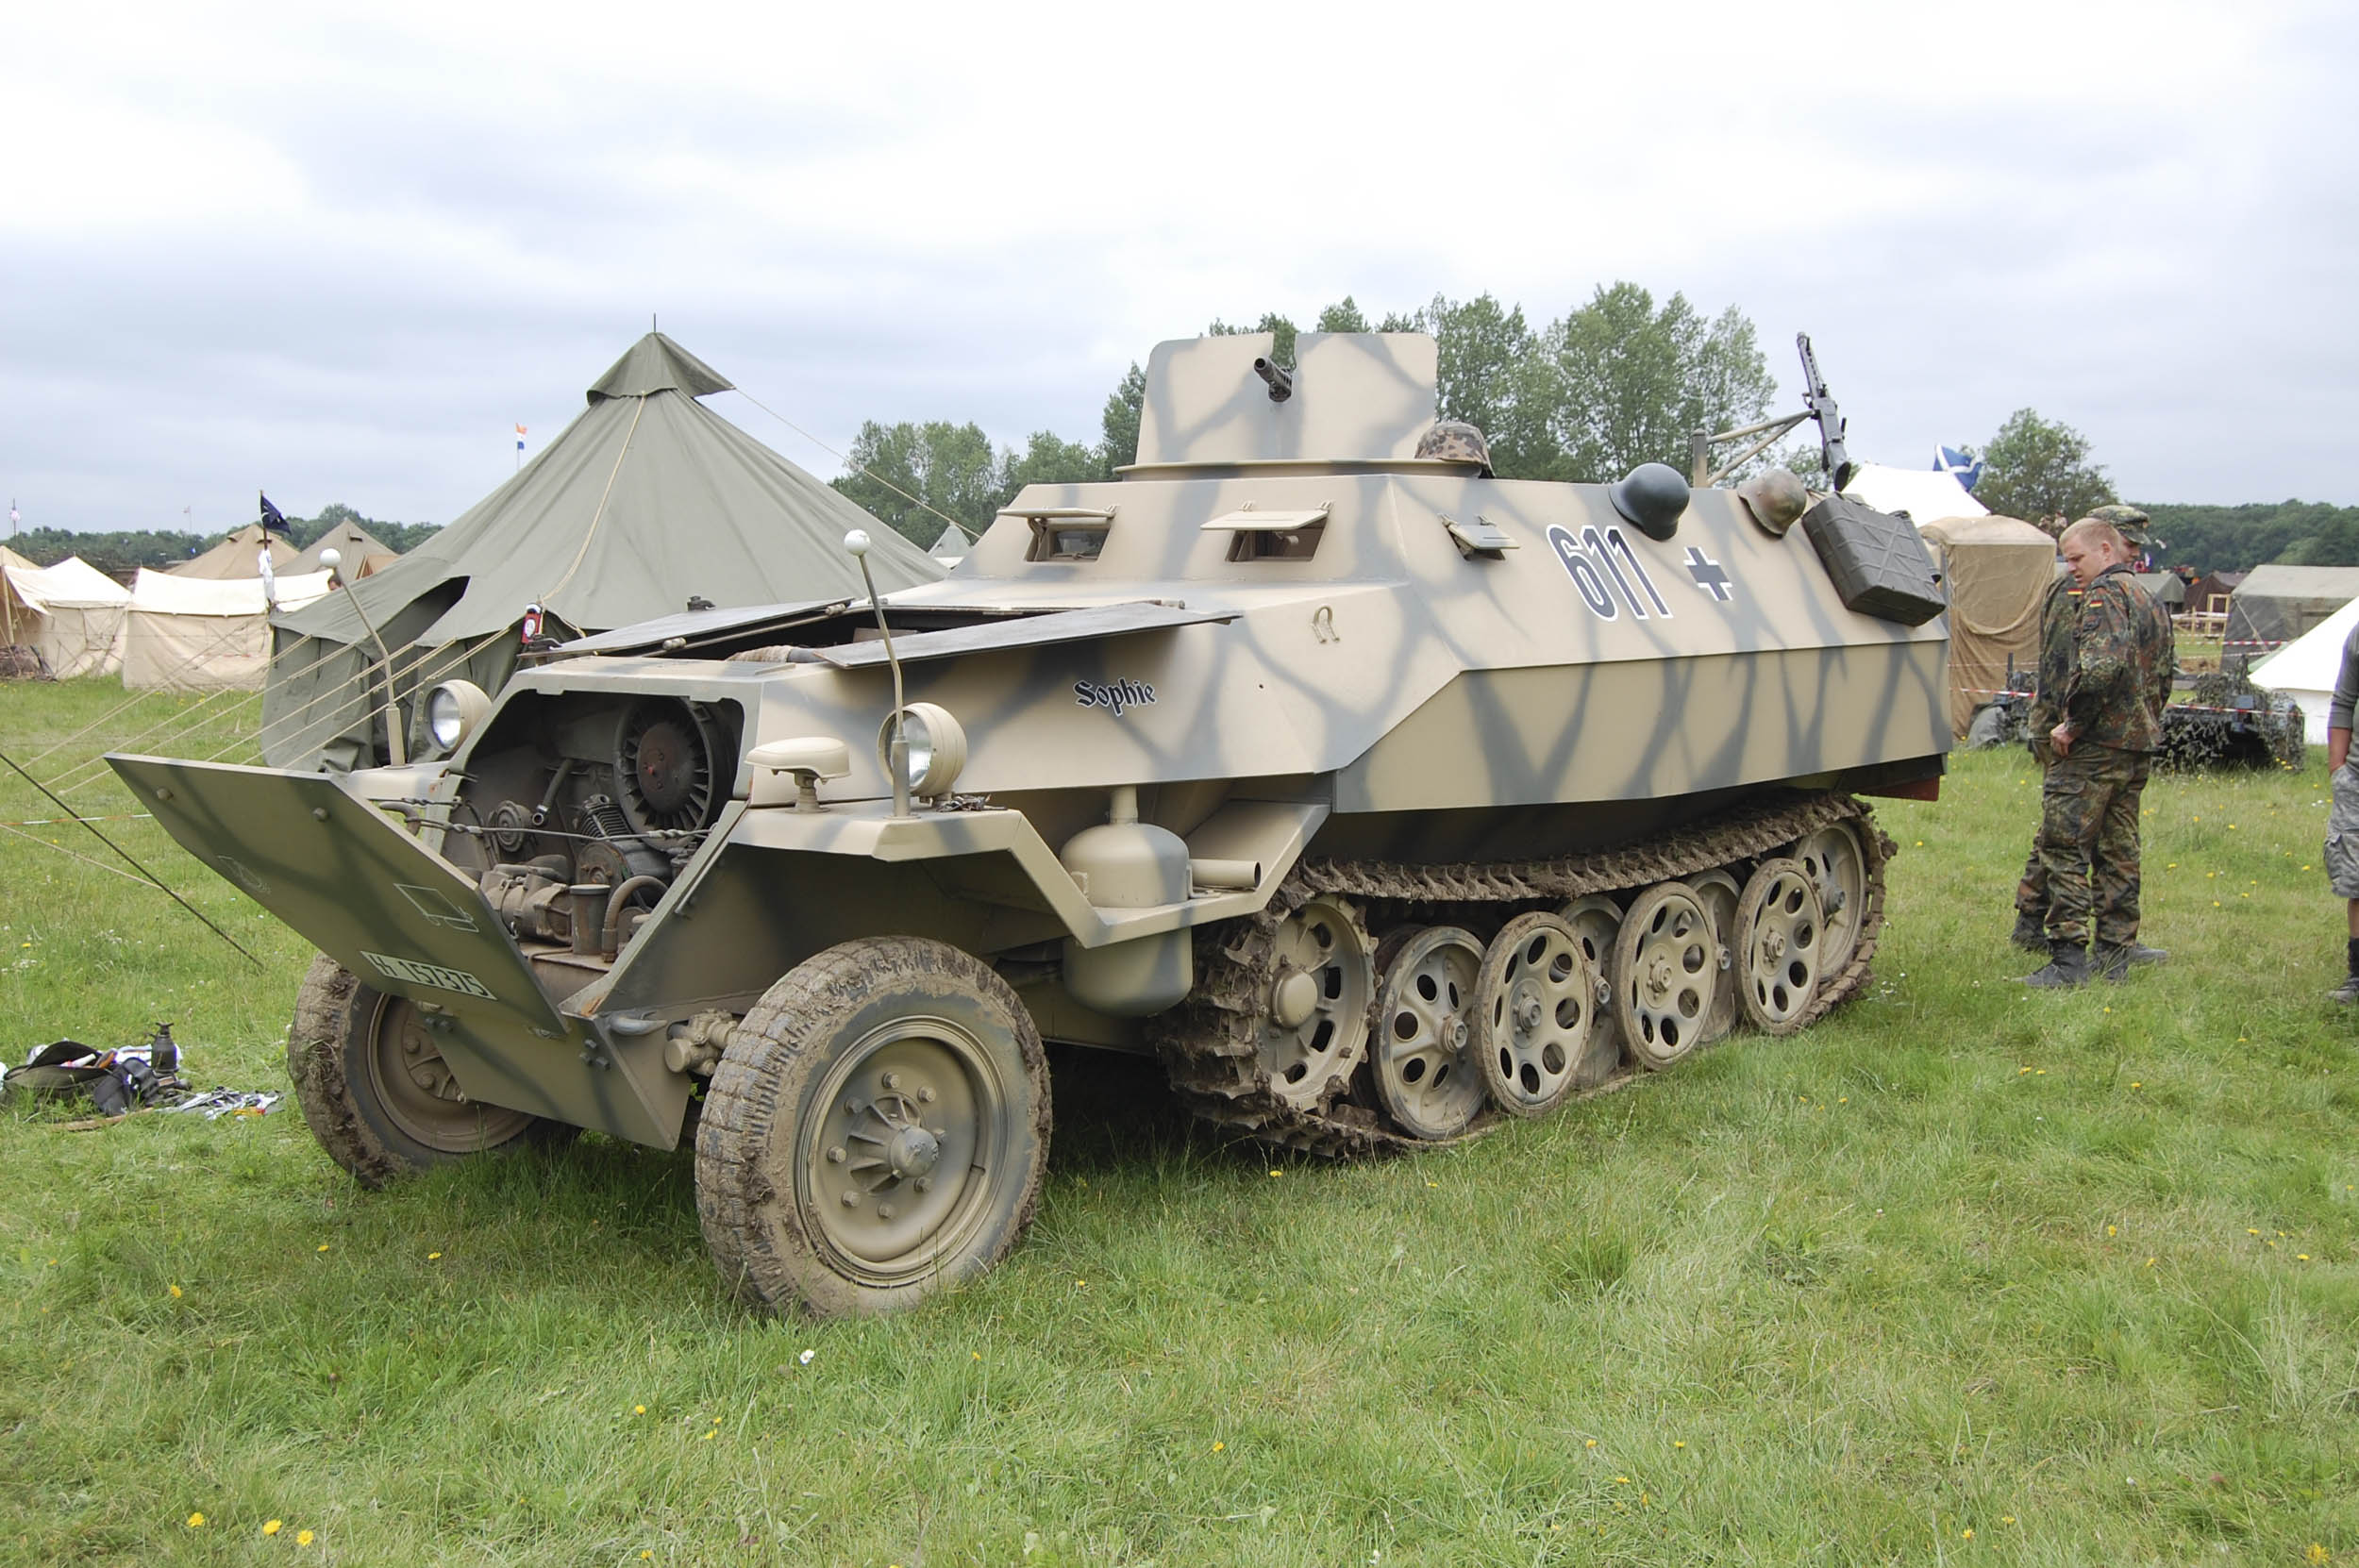 sdKFz 251, or more likely a later Czech built OT-810